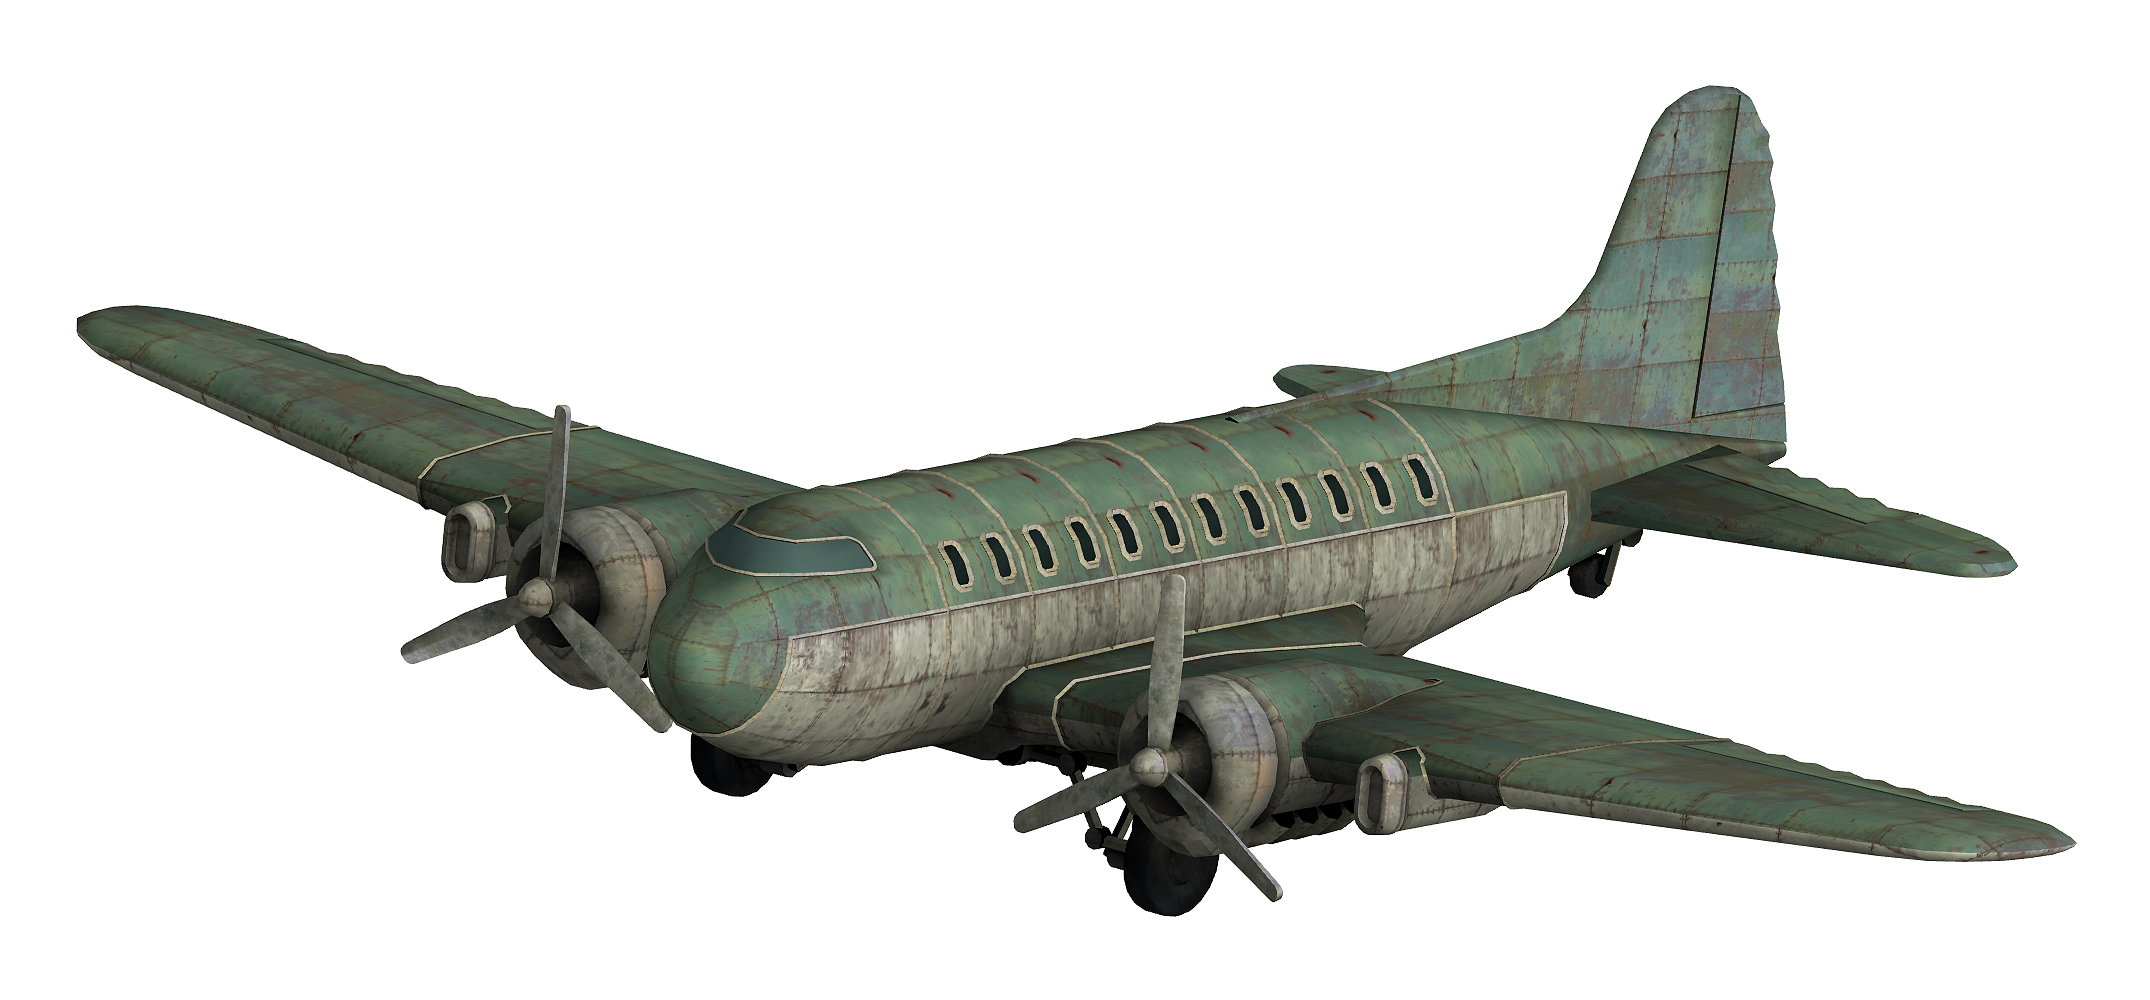 Vegas plane clipart image transparent library Transport plane - The Fallout wiki - Fallout: New Vegas and more ... image transparent library